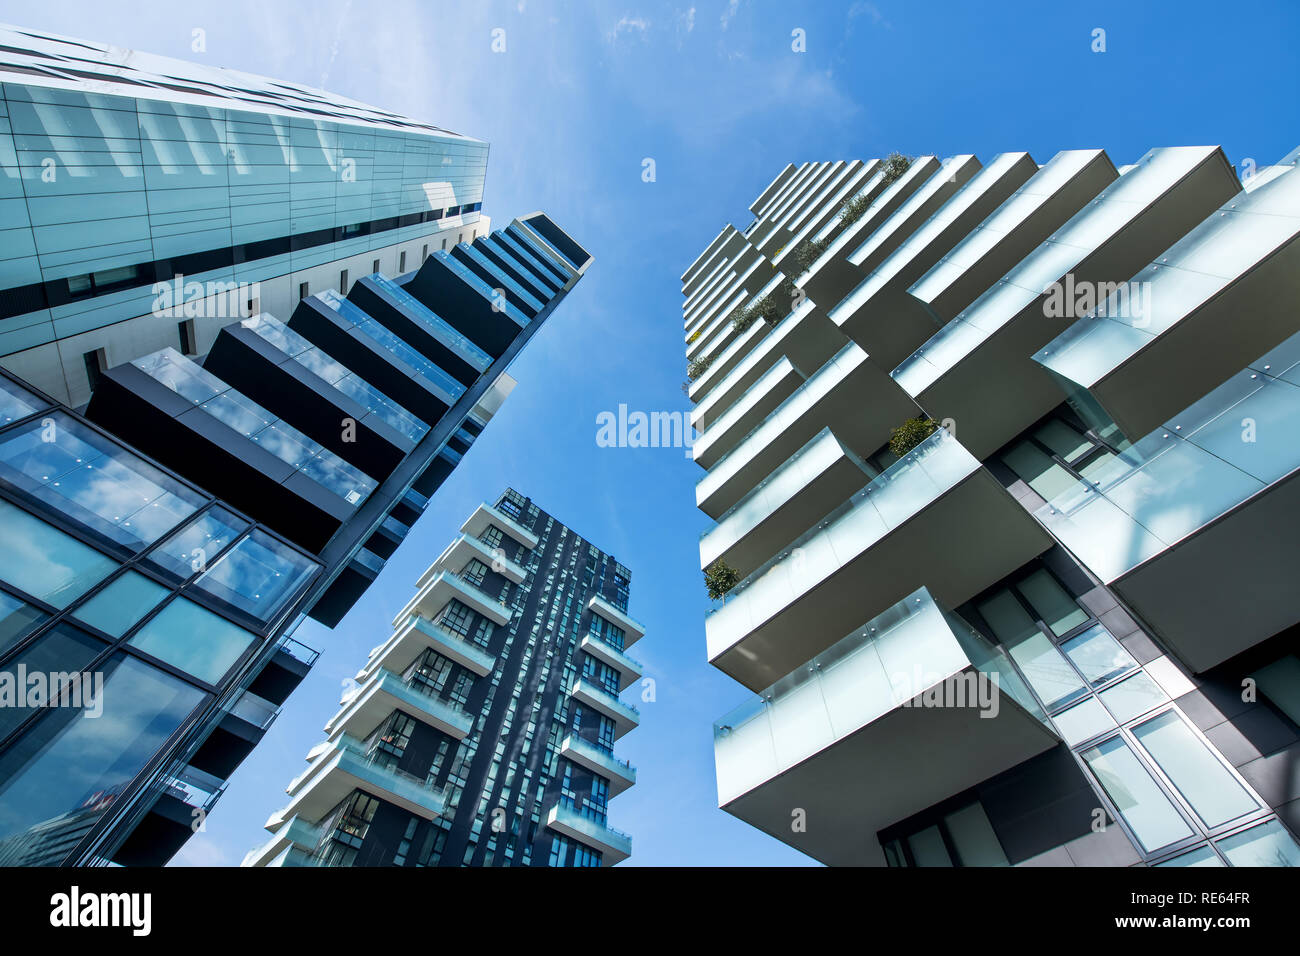 Low angle converging perspective of modern Milan skyscrapers with large balconies against a clear sunny blue sky - Stock Image